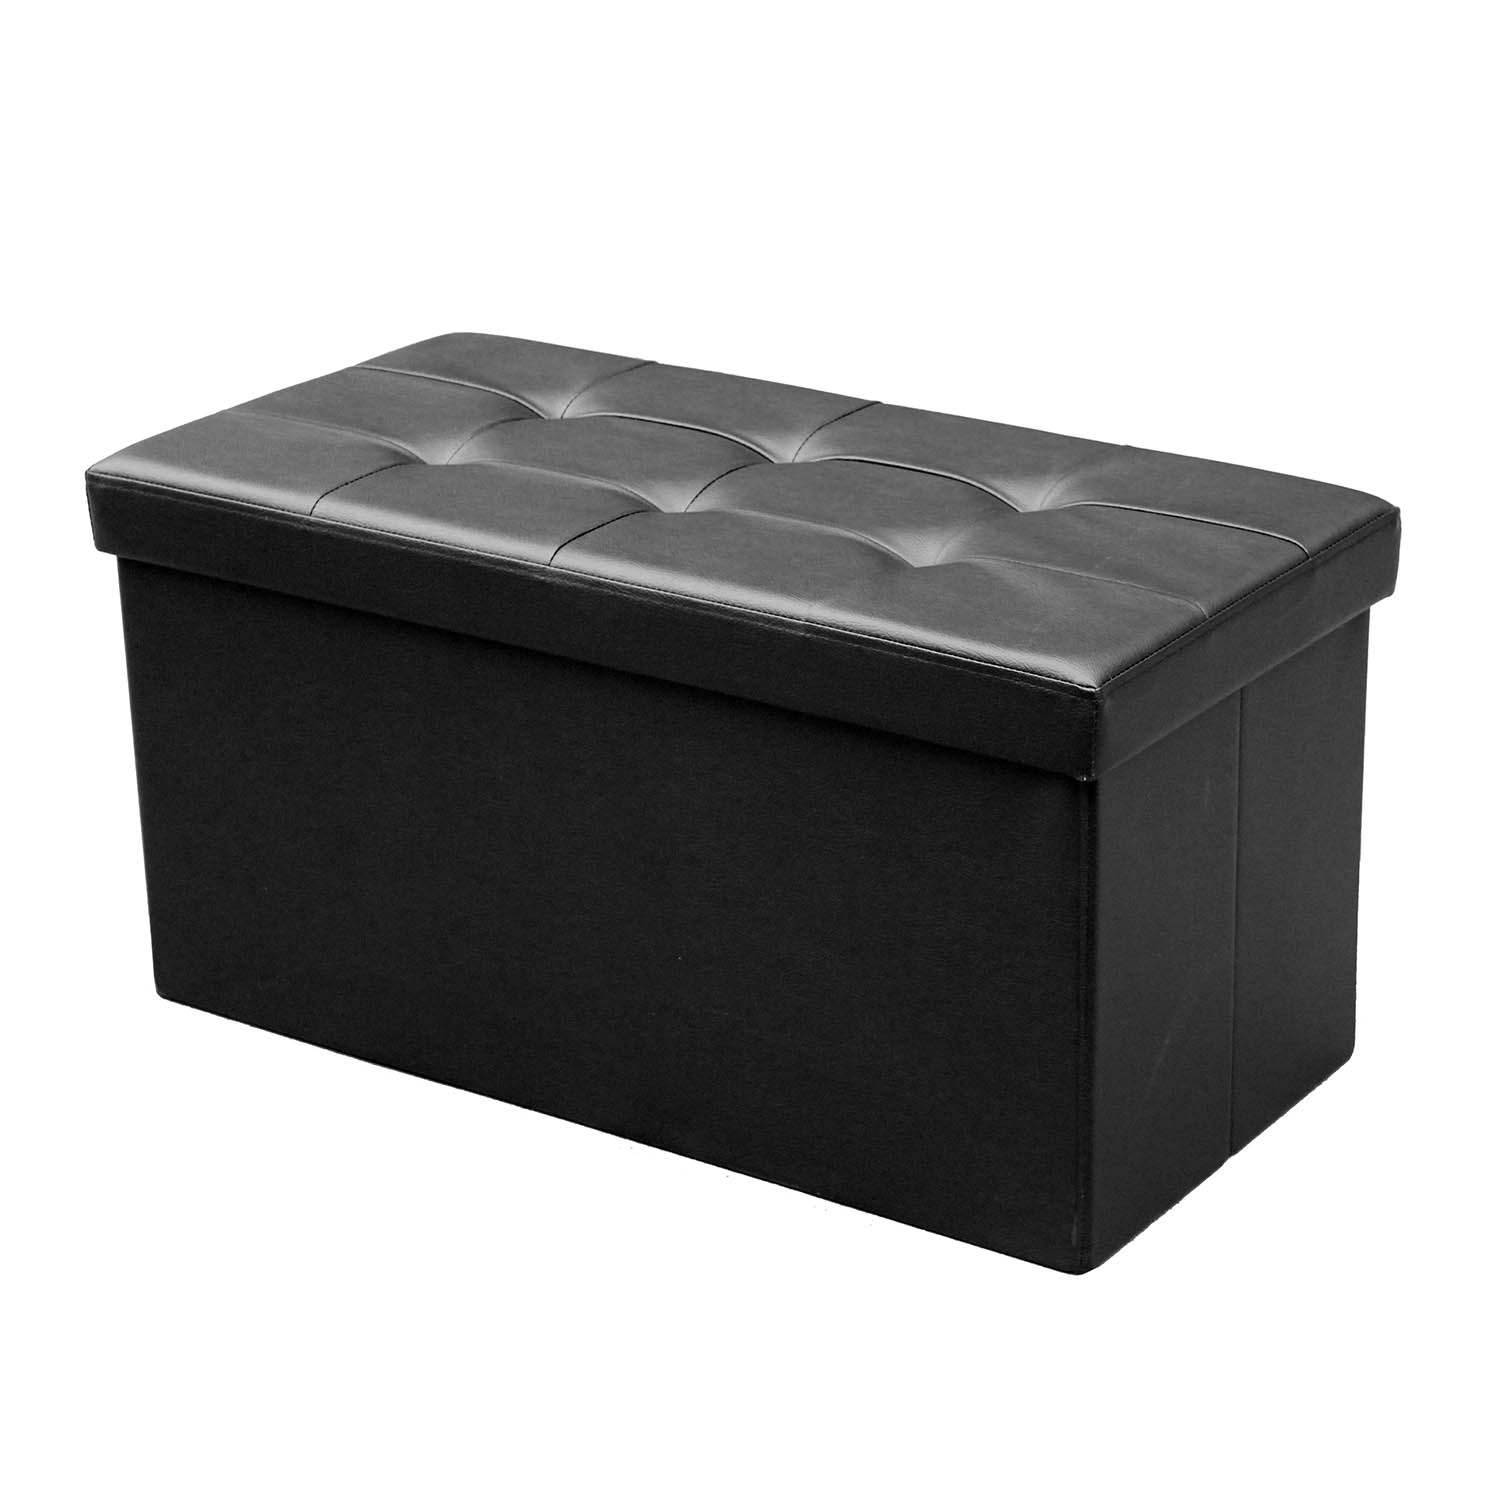 deco in paris banquette coffre pliable noir steven banquette pliable noir. Black Bedroom Furniture Sets. Home Design Ideas